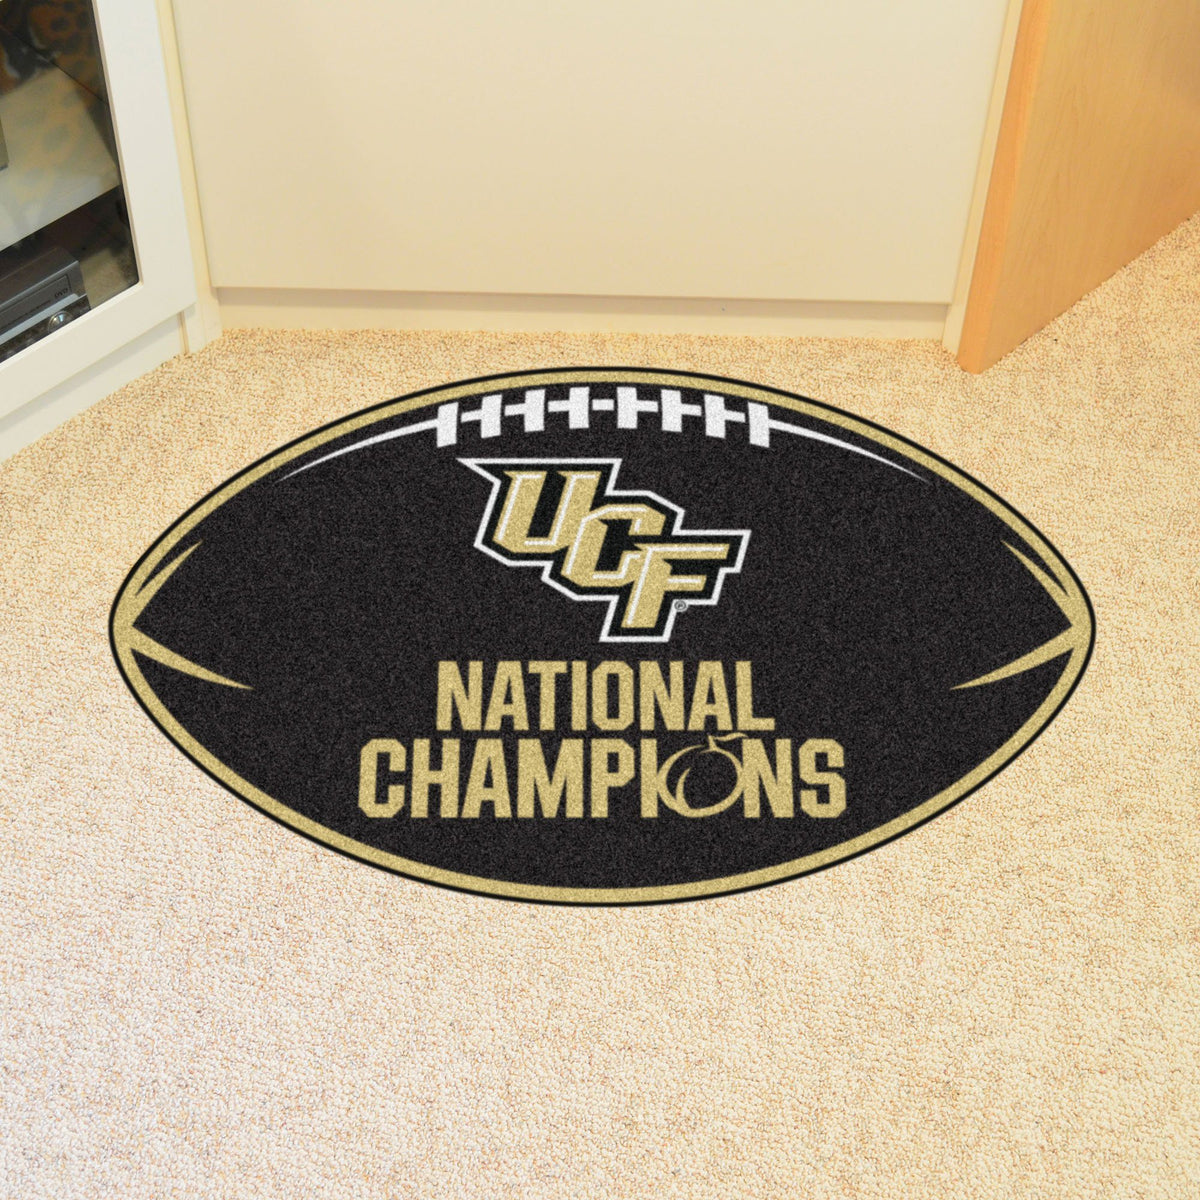 Collegiate - Football Mat: A - K Collegiate Mats, Rectangular Mats, Football Mat, Collegiate, Home Fan Mats Central Florida 2